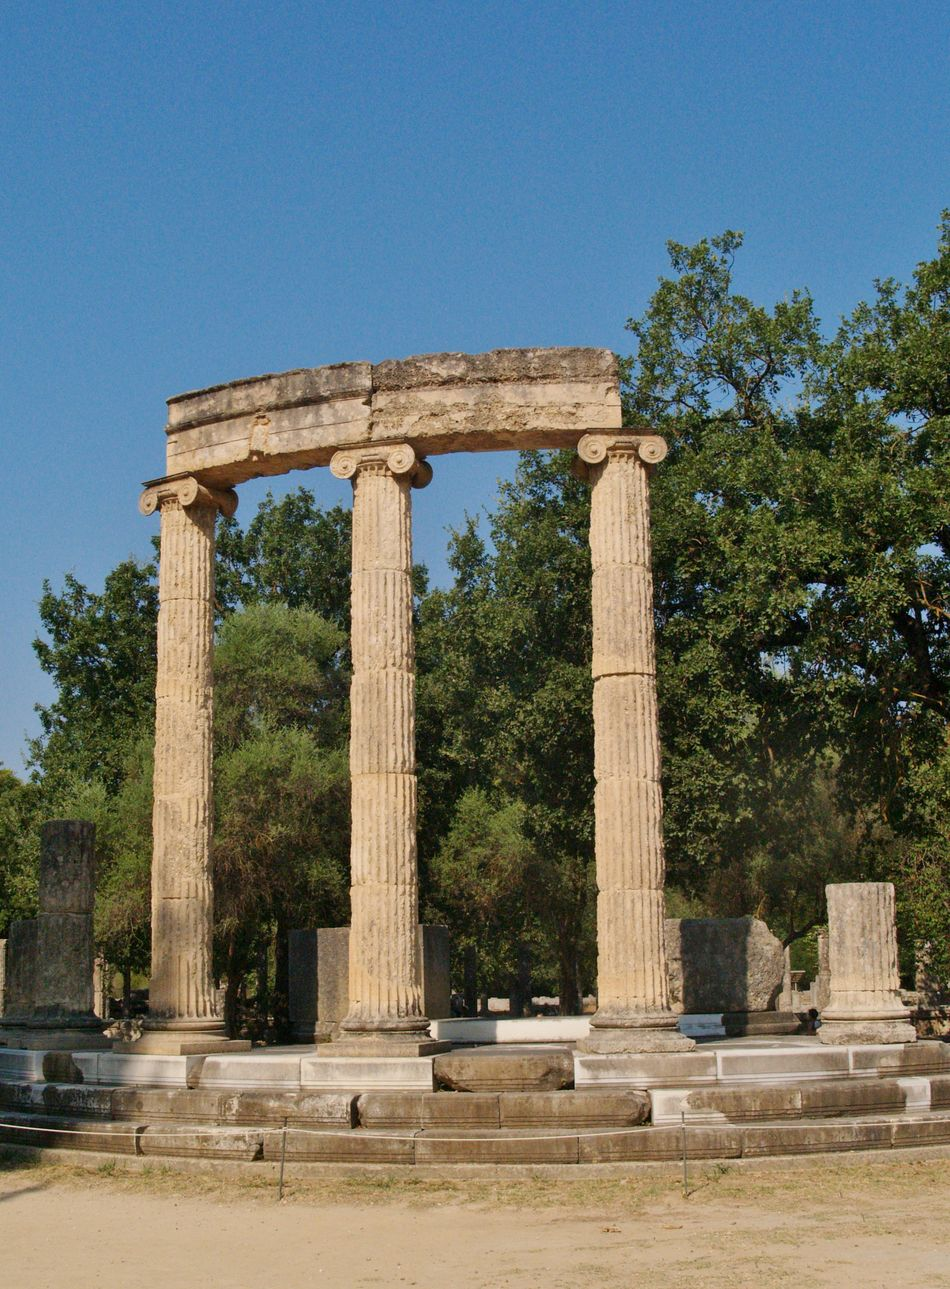 Ancient Ancient Olimpia Greece Ancient Olympia Ancient Olympic Games Architectural Column Architecture Art Beuty Of Greece Clear Sky Greece History Monument Old Olimpic Games  Olimpic Spirit Olympia Peloponisos The Past Tourism Visit Greece